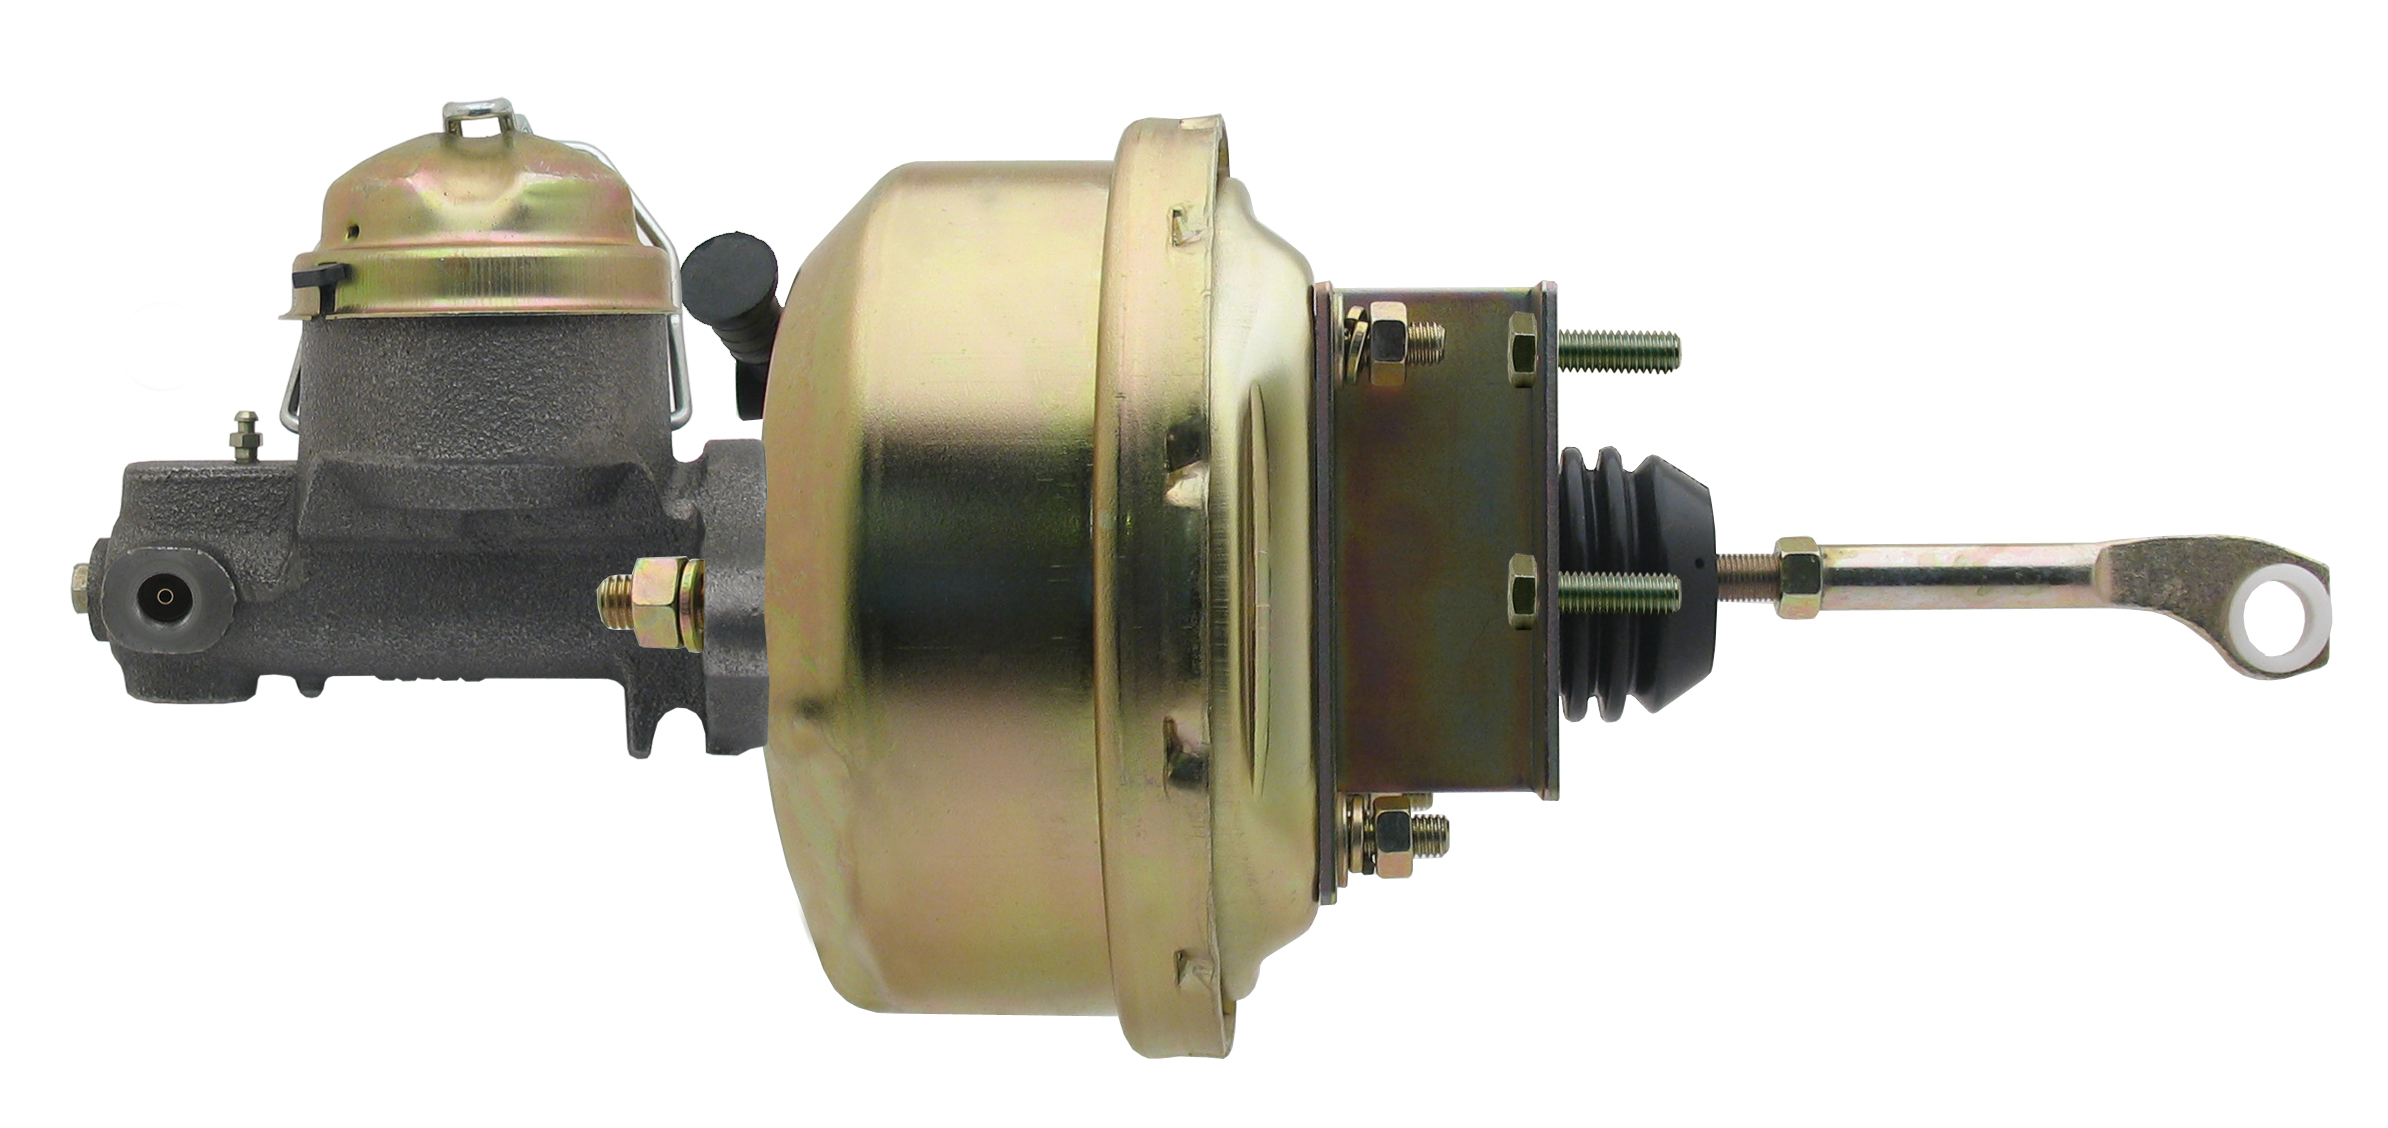 Ford Mustang 1964-66 Power Brake Unit - Automatic Transmission (Drum/Drum)